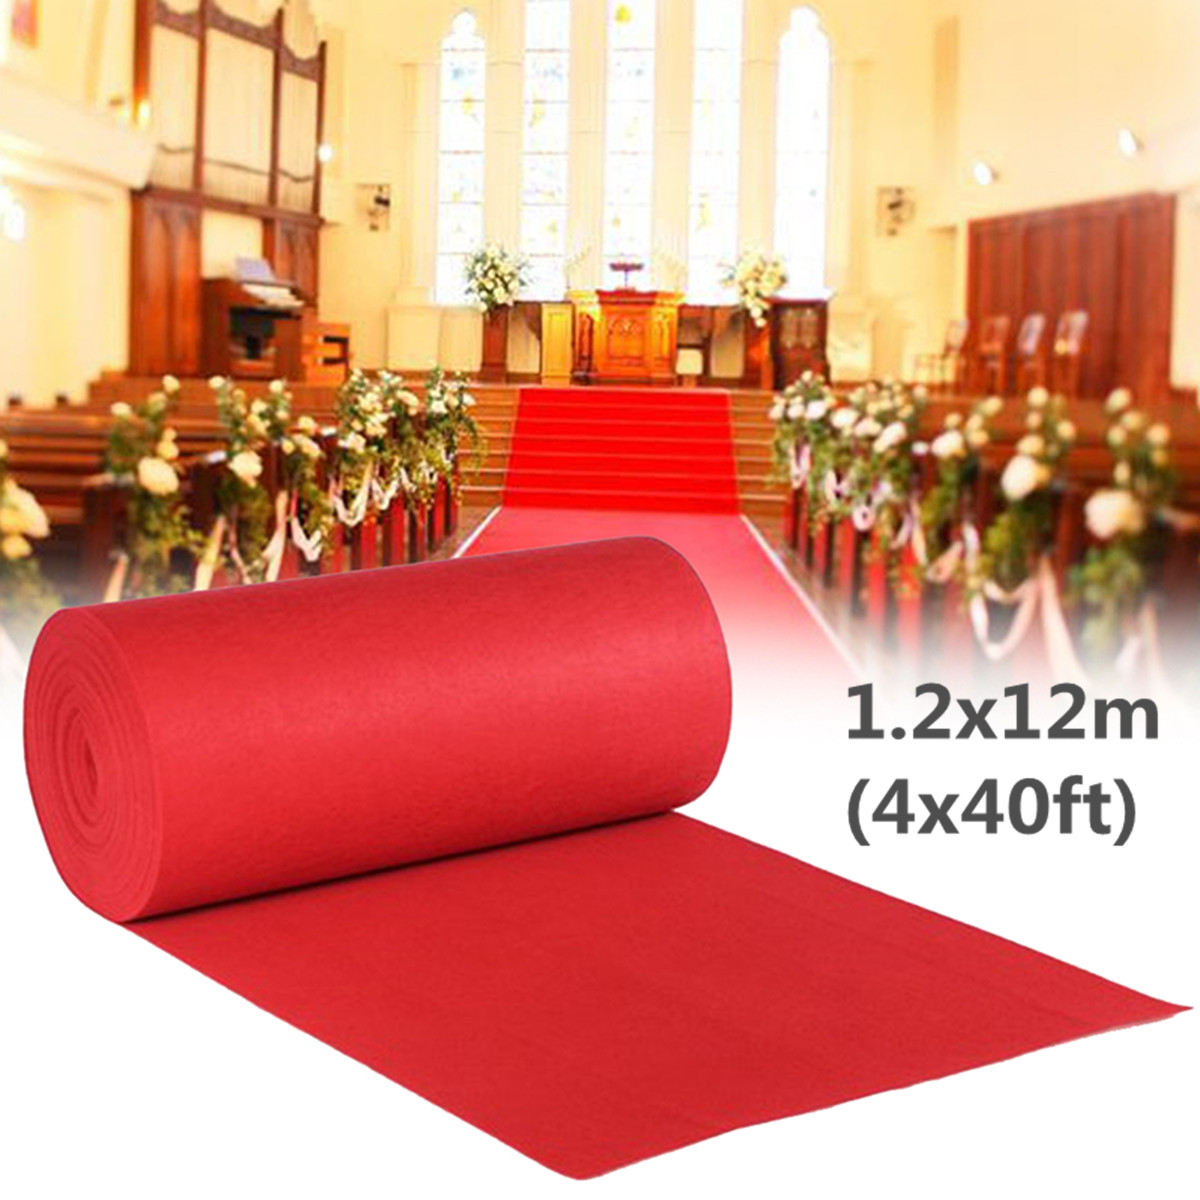 12x1.2m Red Carpet Wedding Aisle Floor Runner Hollywood Birthday Party Wedding Decoration Supplies Accessories 40ftx4ft12x1.2m Red Carpet Wedding Aisle Floor Runner Hollywood Birthday Party Wedding Decoration Supplies Accessories 40ftx4ft